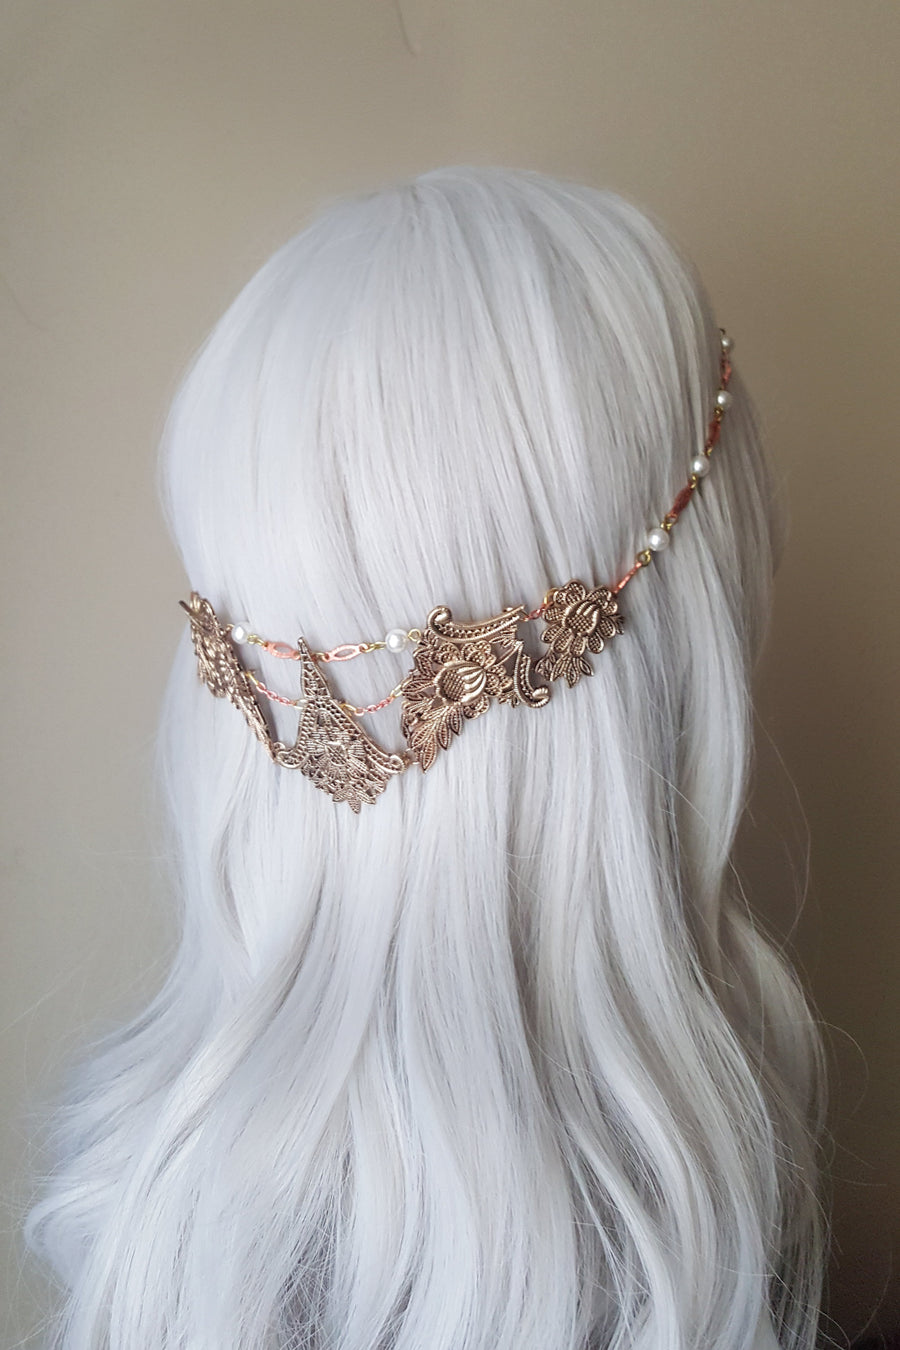 Mixed Metal Filigree Halo Headpiece - Style #202